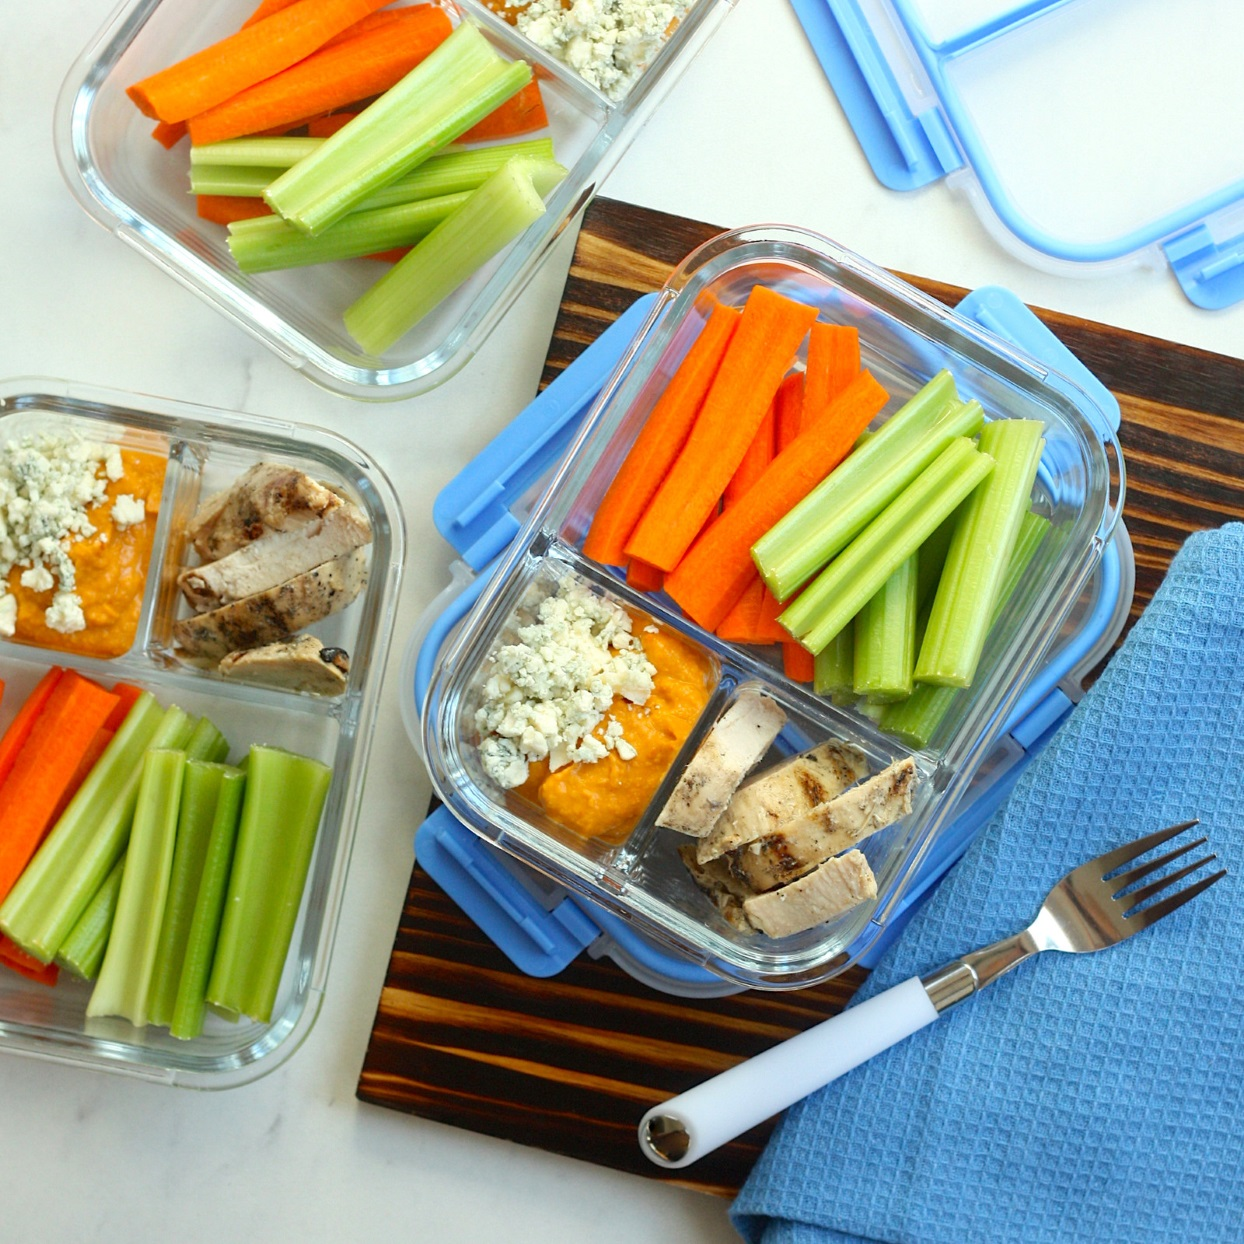 These tailgate-inspired lunch bowls can be assembled in about 15 minutes using just a handful of ingredients from your local specialty grocery store, like pregrilled chicken and spicy Buffalo-flavored hummus. We're packing these up with crunchy veggie sticks and blue cheese so you can savor all the game-day flavors, but for a fraction of the calories.Source: EatingWell.com, December 2019